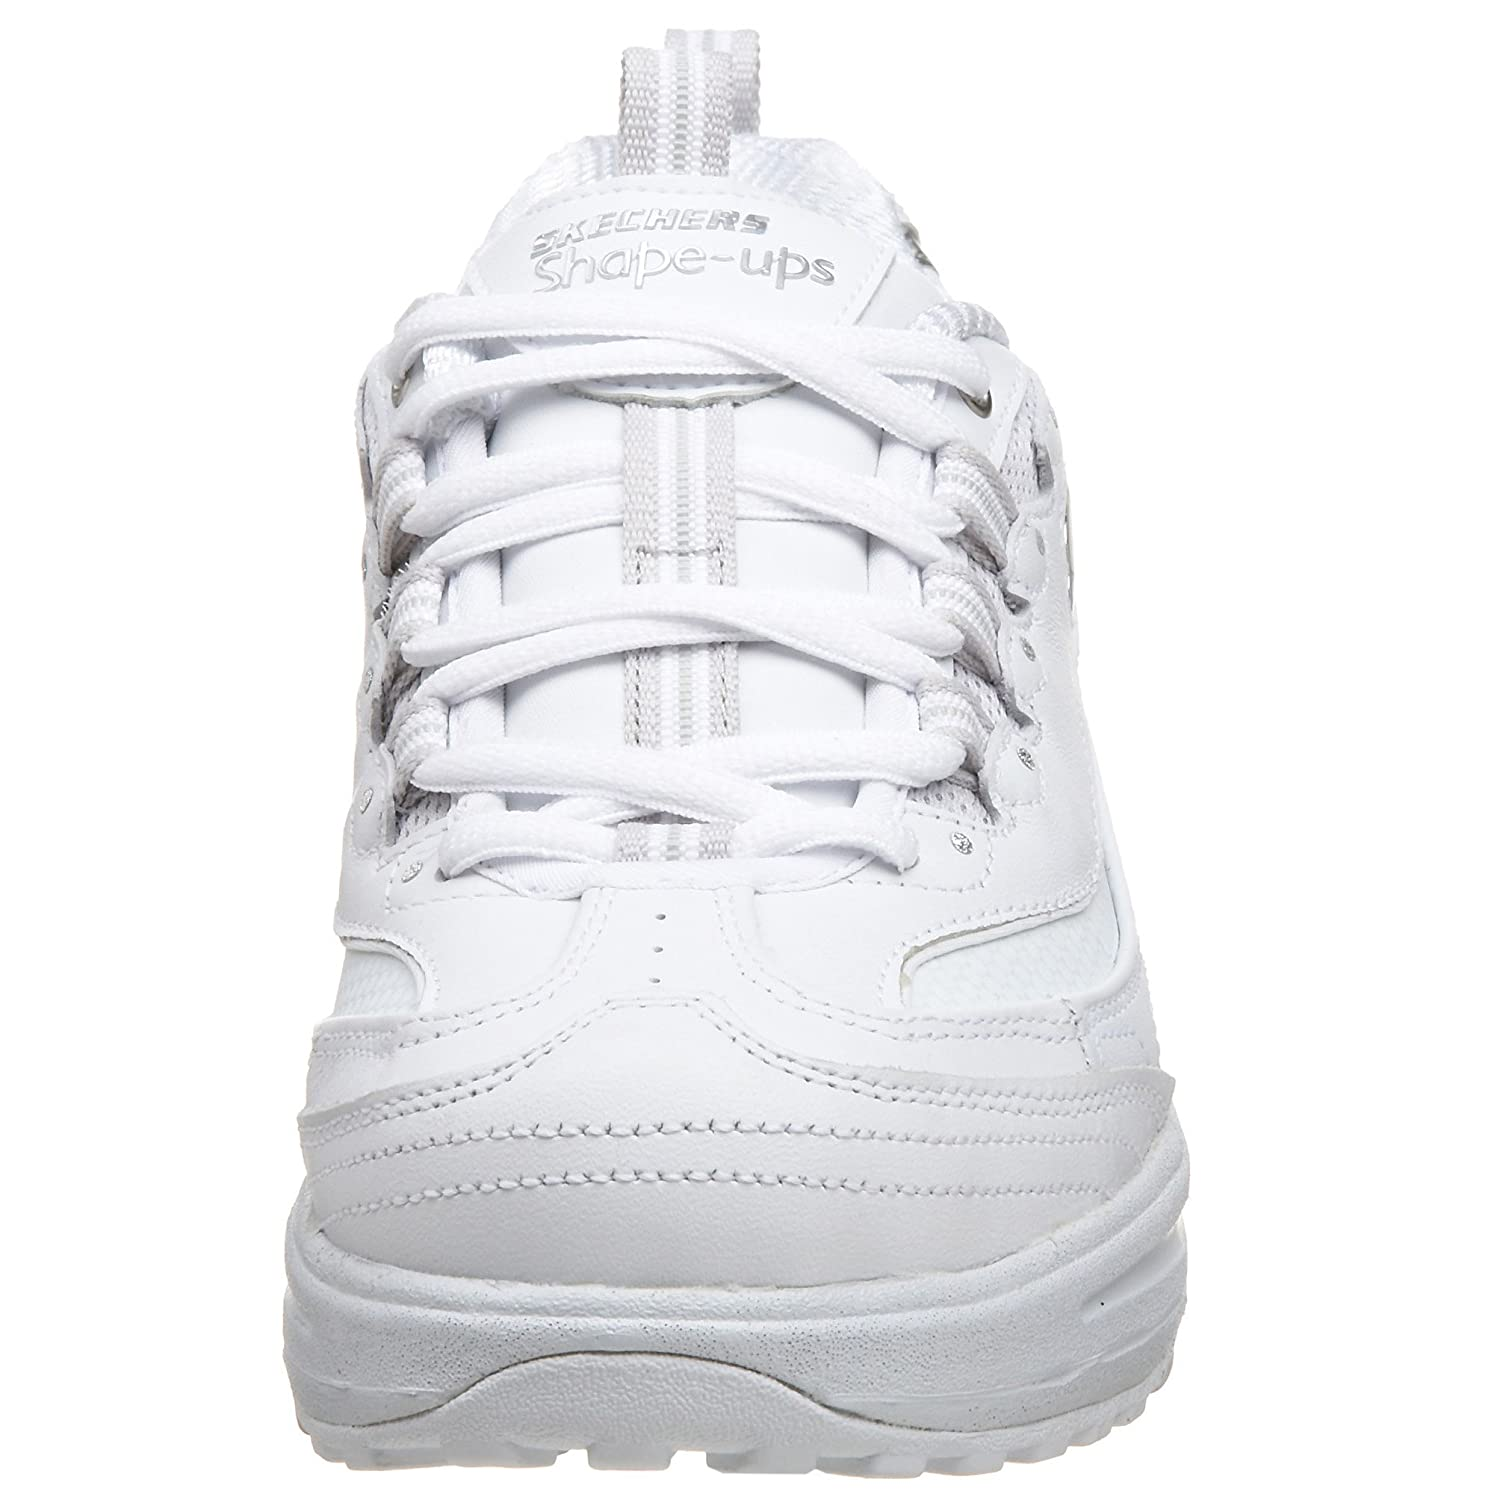 Skechers Shape Ups Atletisk Sko For Kvinner lRFT5VvyeC